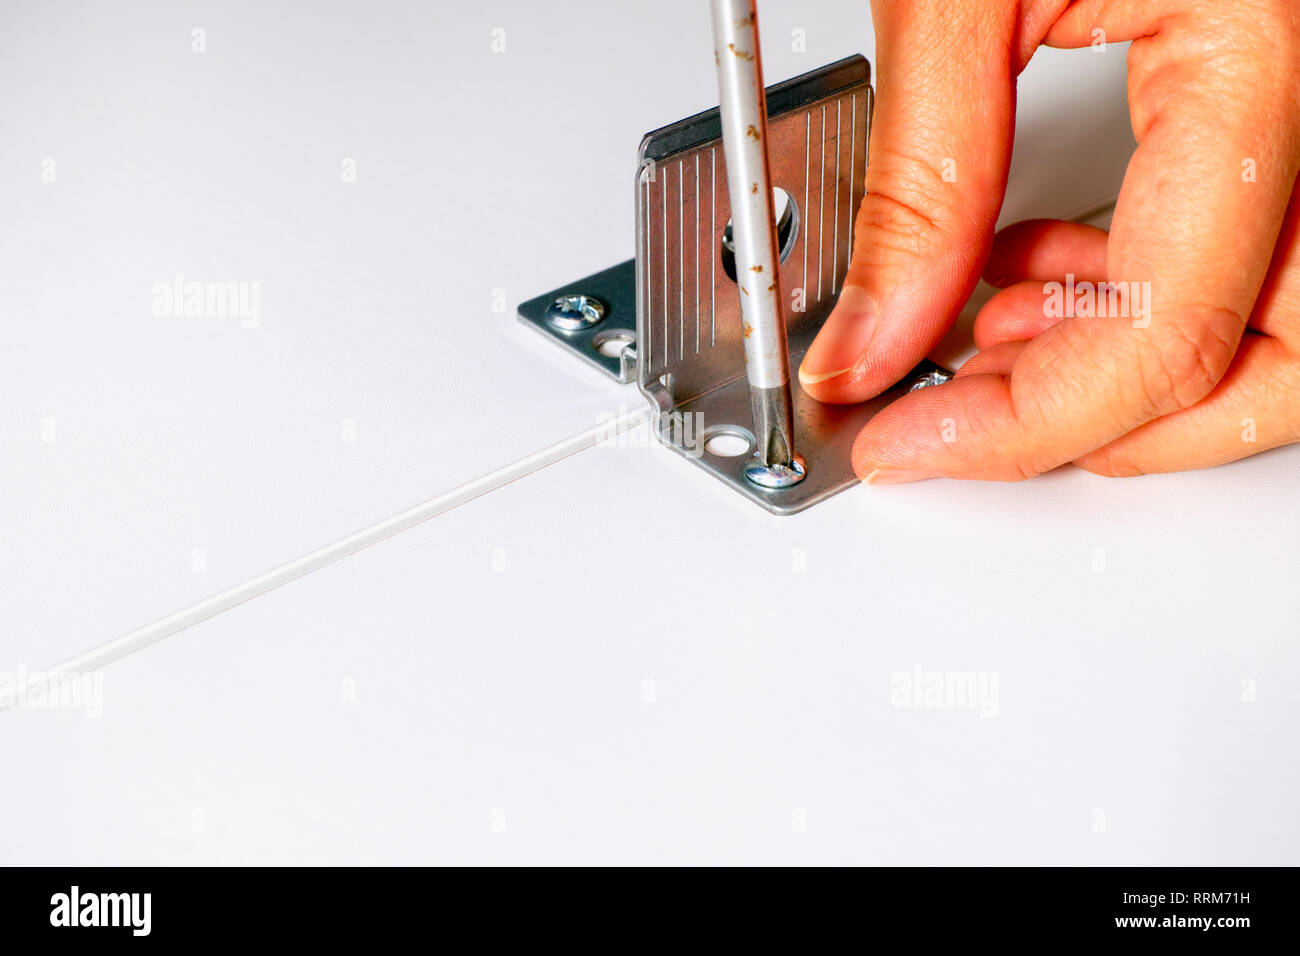 Person hand with screwdriver twisting the screw into the furniture. Close-up. - Stock Image